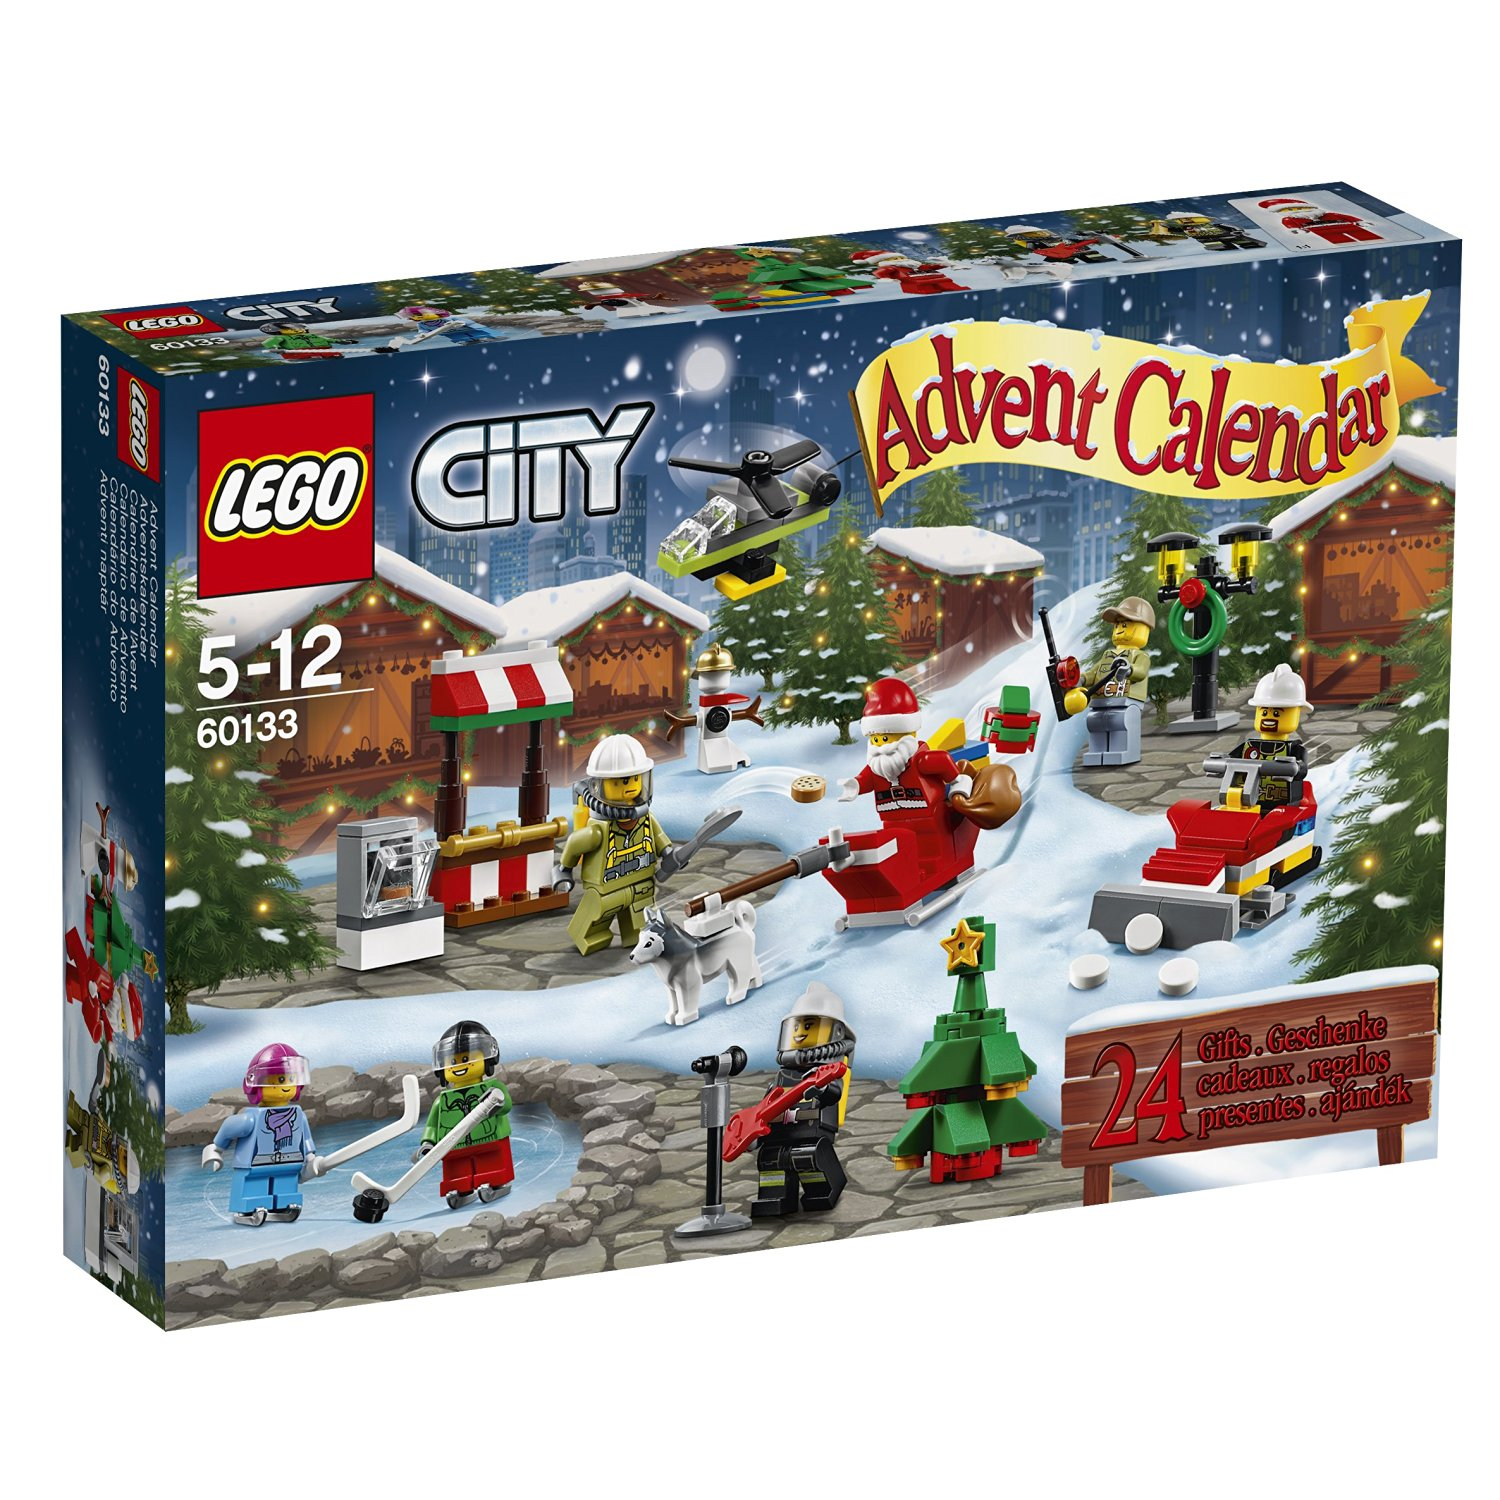 lego city calendrier de l 39 avent jouet pas cher amazon ventes pas. Black Bedroom Furniture Sets. Home Design Ideas